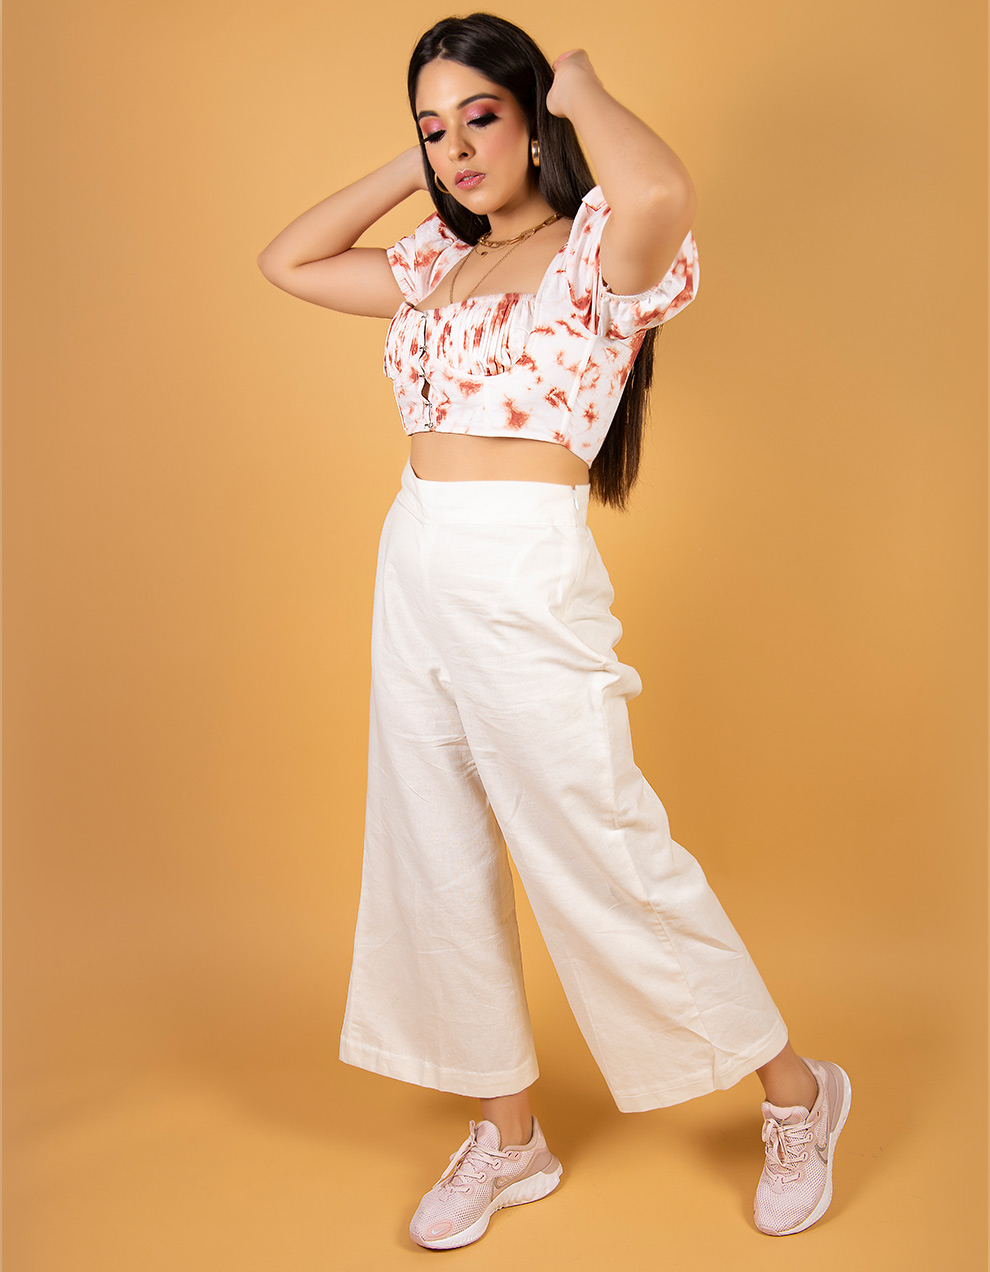 Rust Crop top with white high waist pant